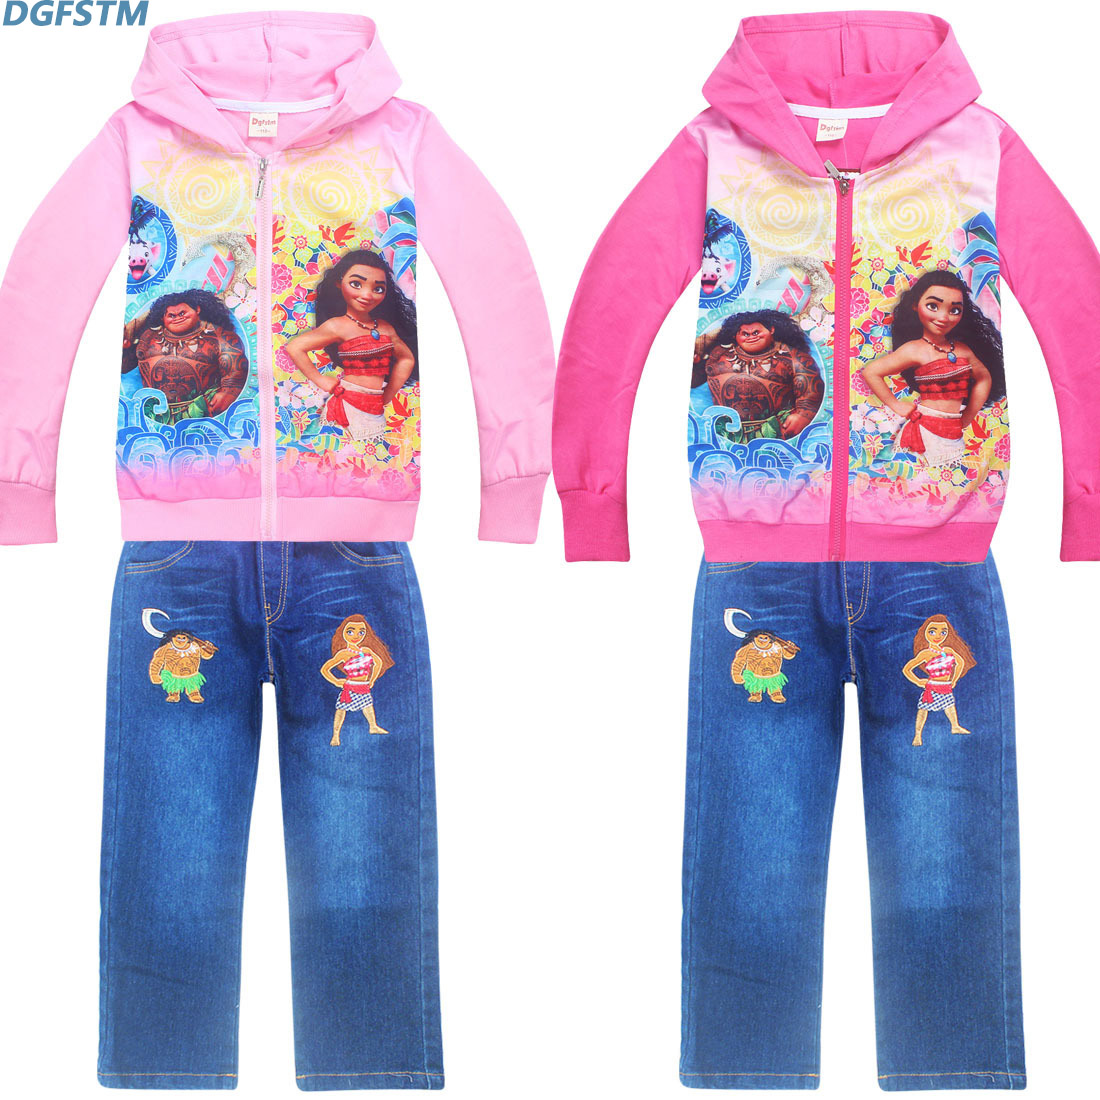 Autumn Spring New 3-10 Years Old Baby Kids Clothing Sets Children Girls Sweatshirt 1pcs Jeans Pants 1pcs Suits for Child Clothes girls clothes 2017 autumn spring new fashion brand children s clothing for 2 3 4 5 6 7 8 9 10 years old kids tops tee and pants